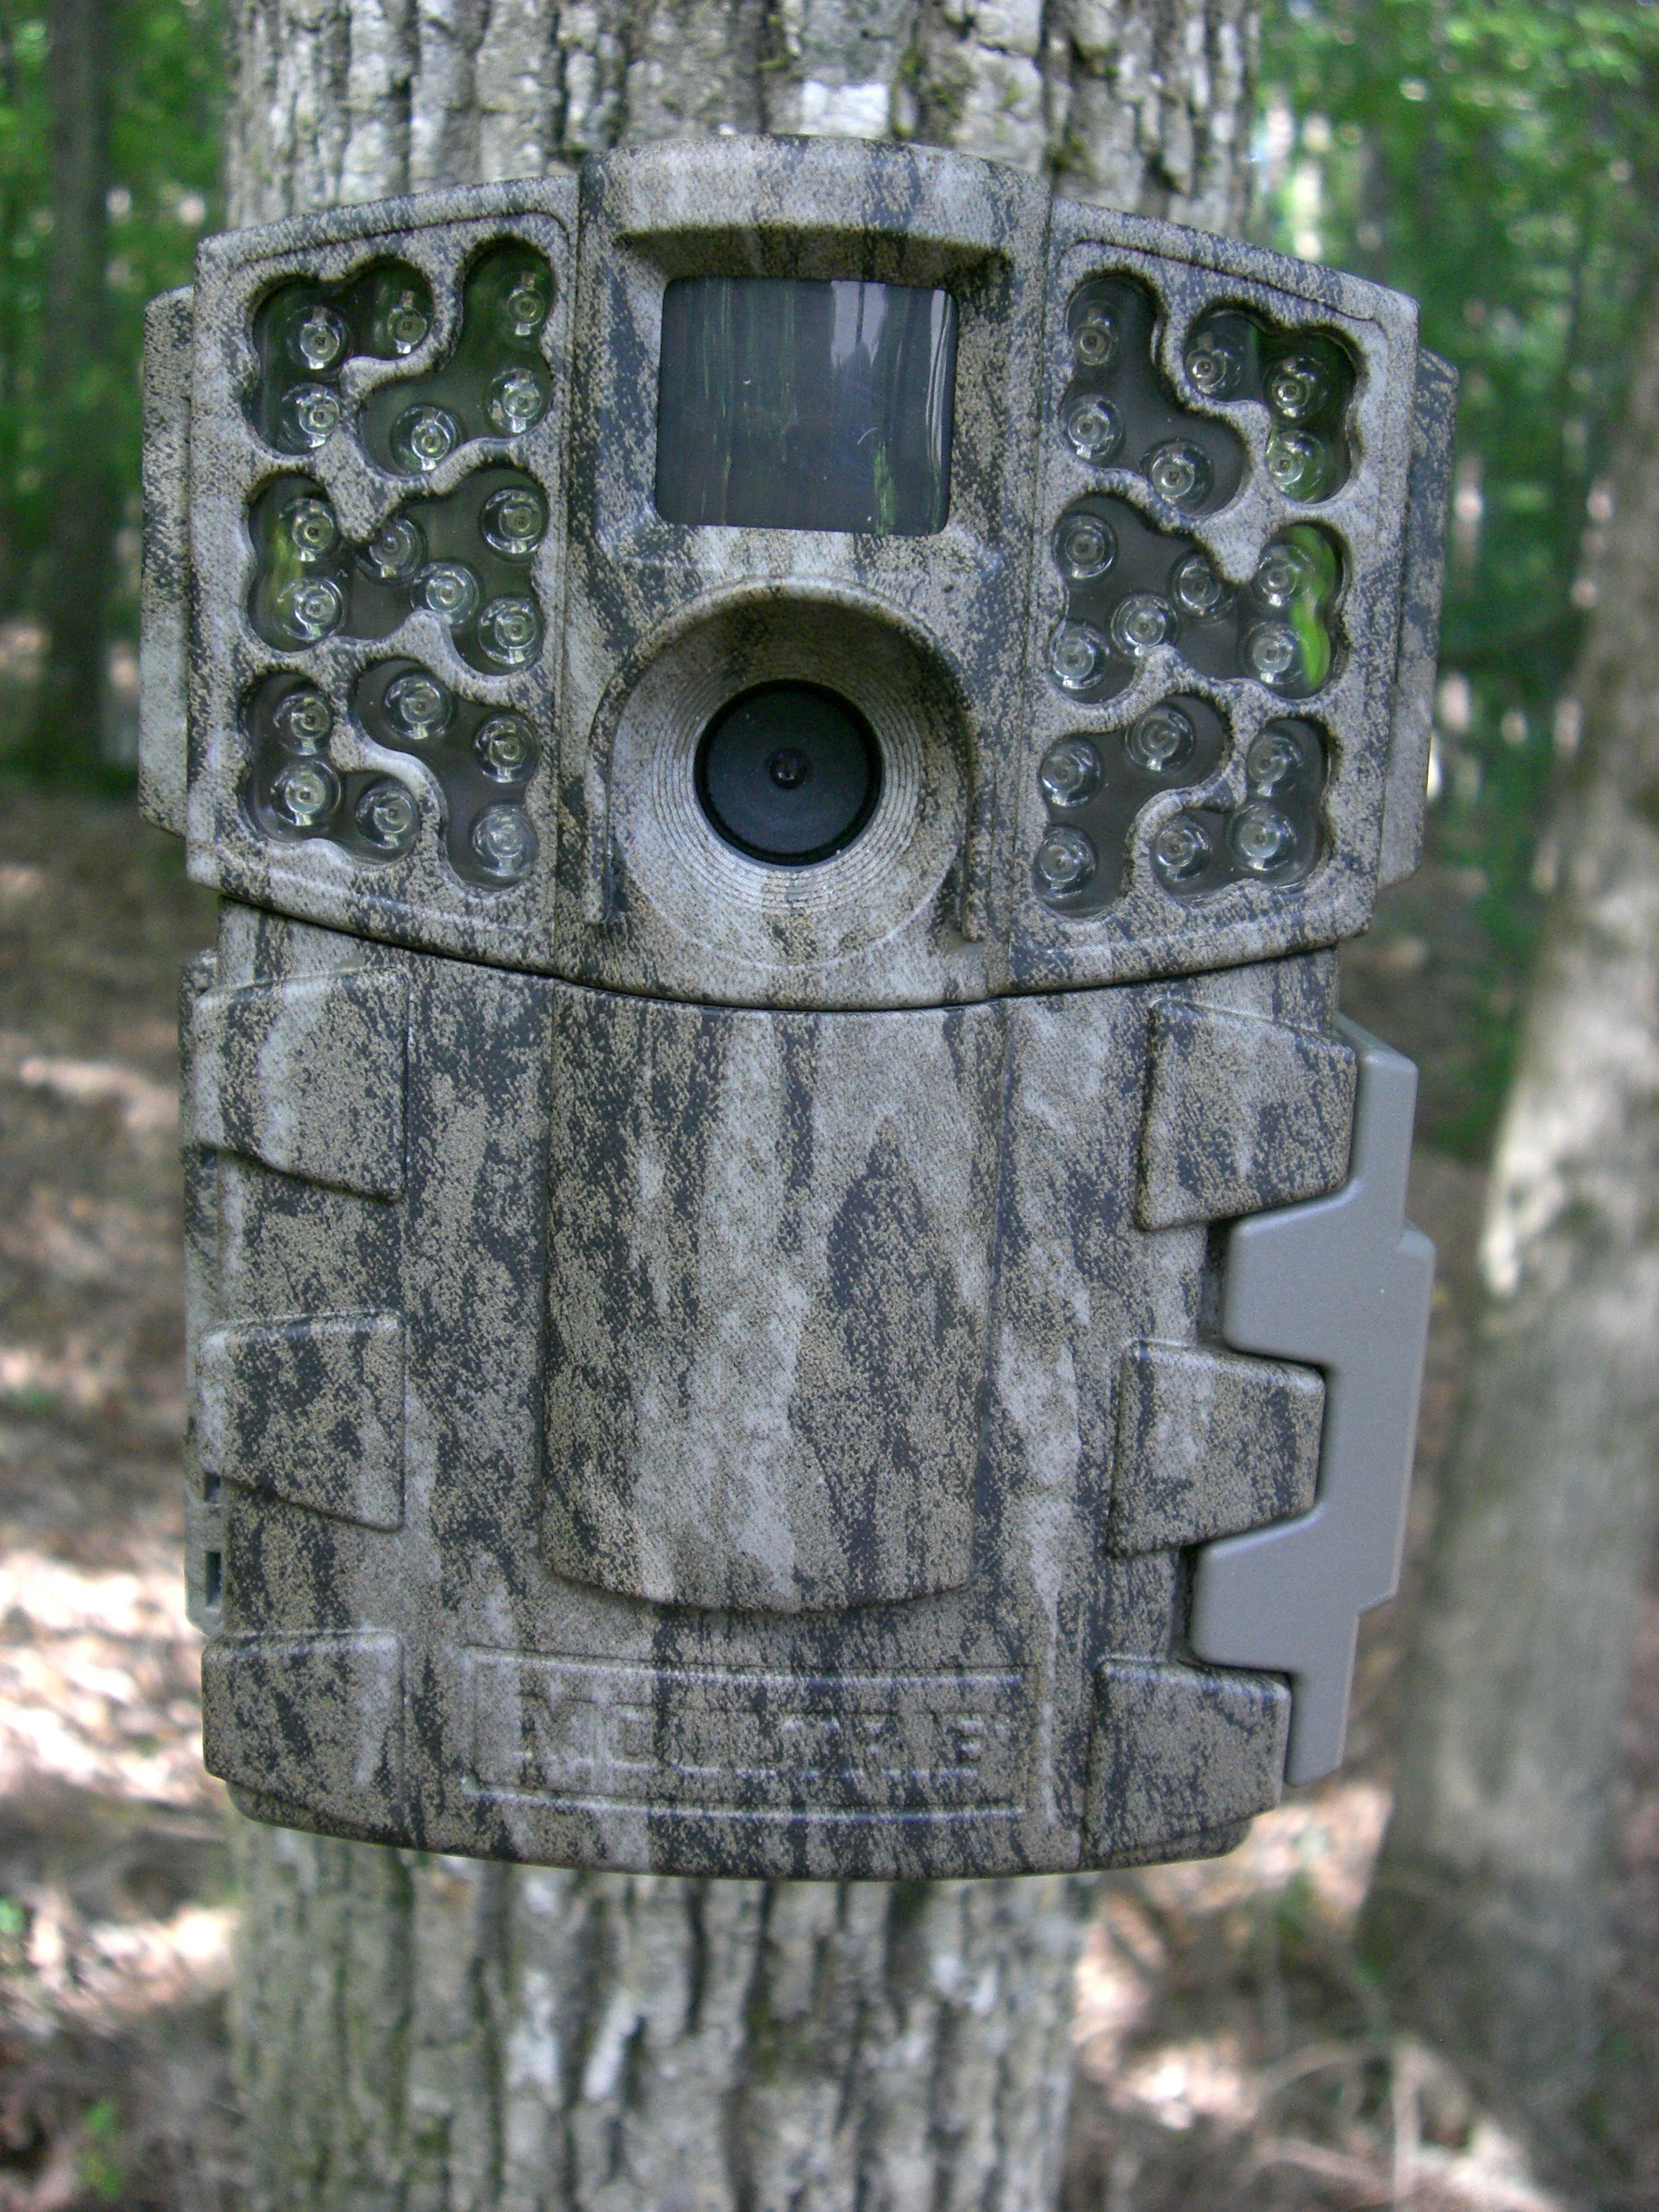 Moultrie M-880i Gen2 Camera Review